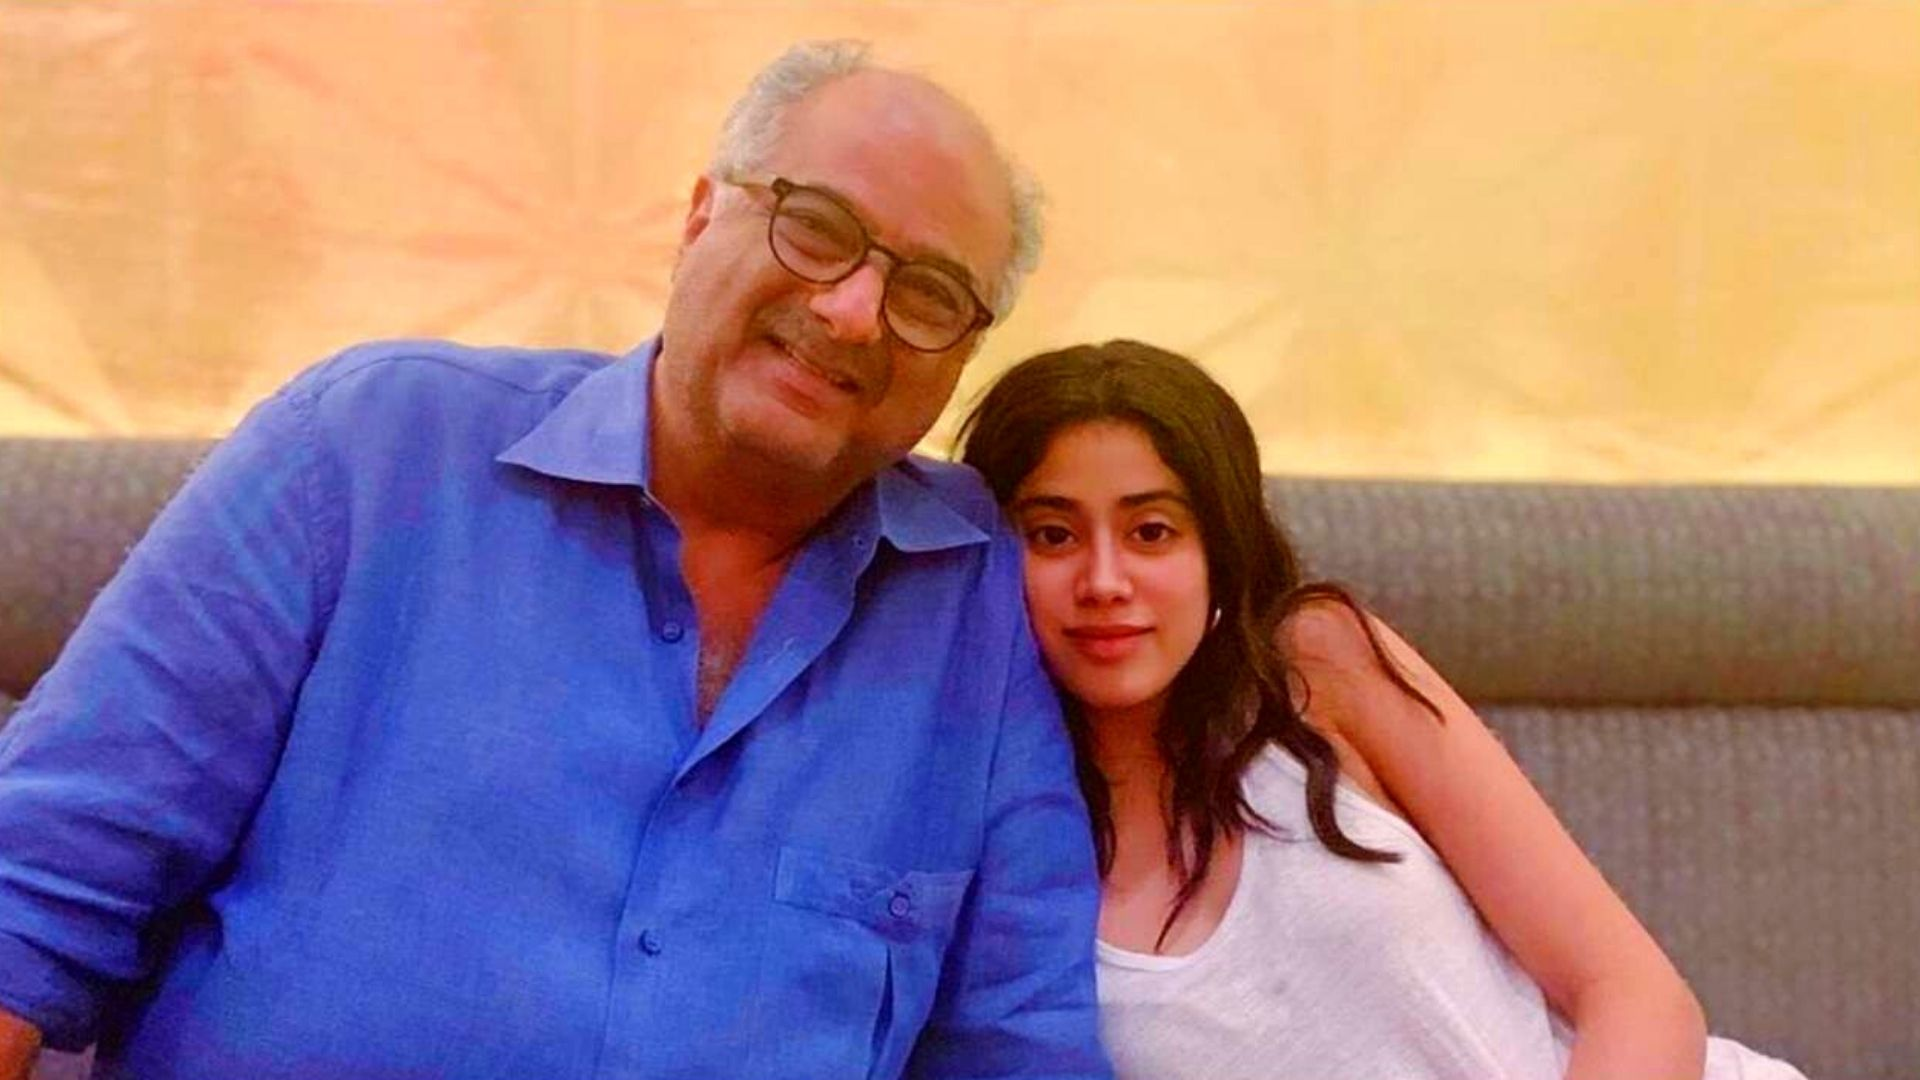 Janhvi Kapoor Shares Goofy-Yet-Memorable Moments From Her Vacation With The Dad; Photos Will Leave You Hooked